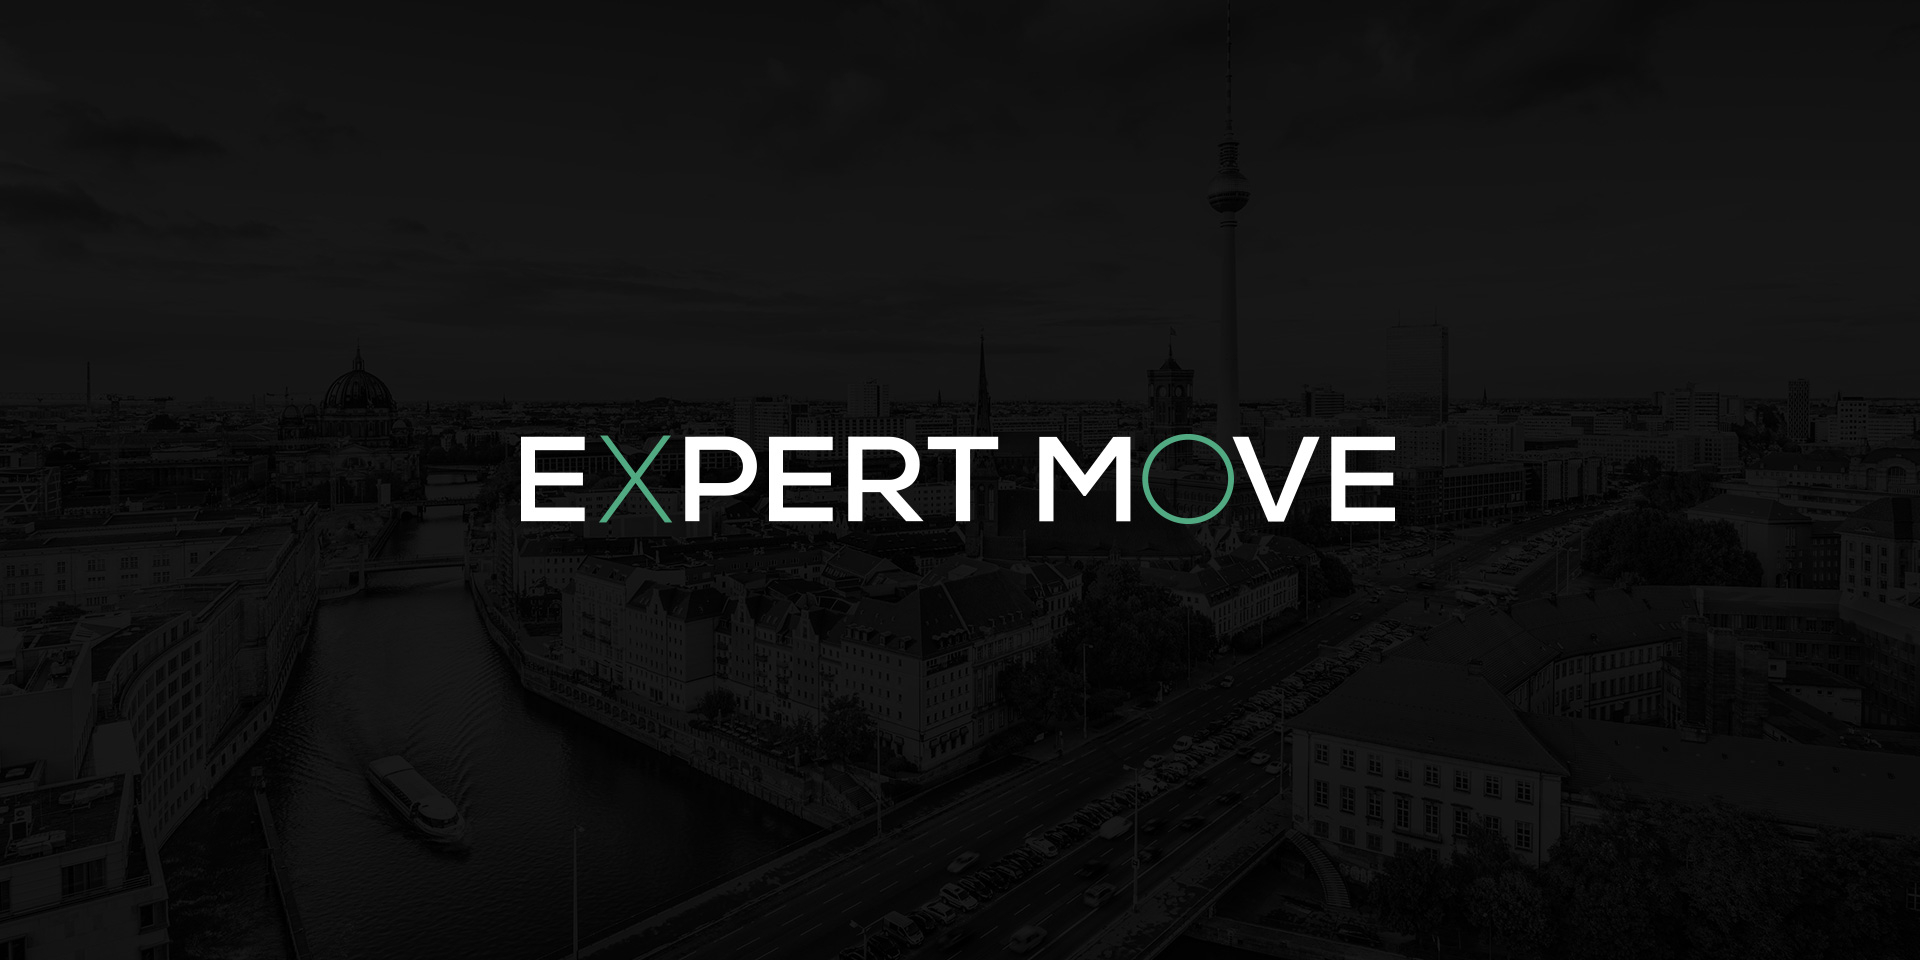 Expert Move (Relocation) – Corporate Identity